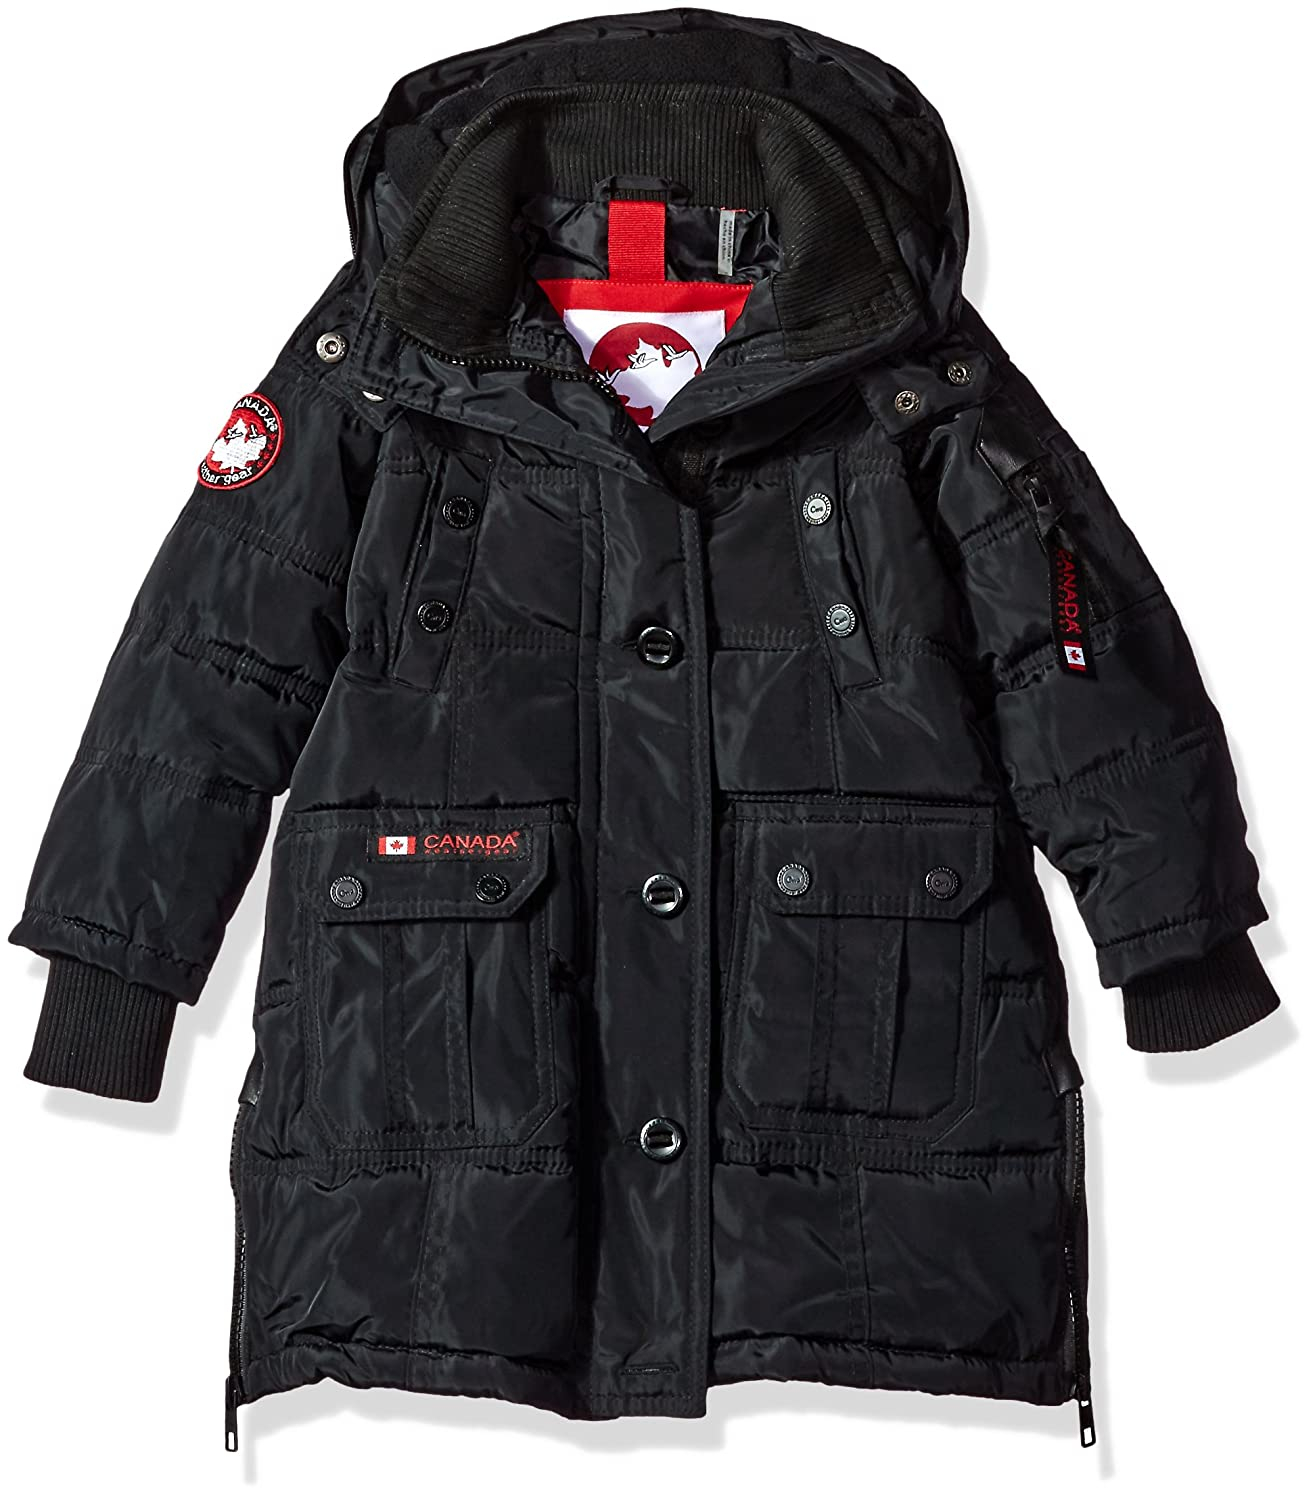 More Styles Available CANADA WEATHER GEAR Girls Toddler Outerwear Jacket